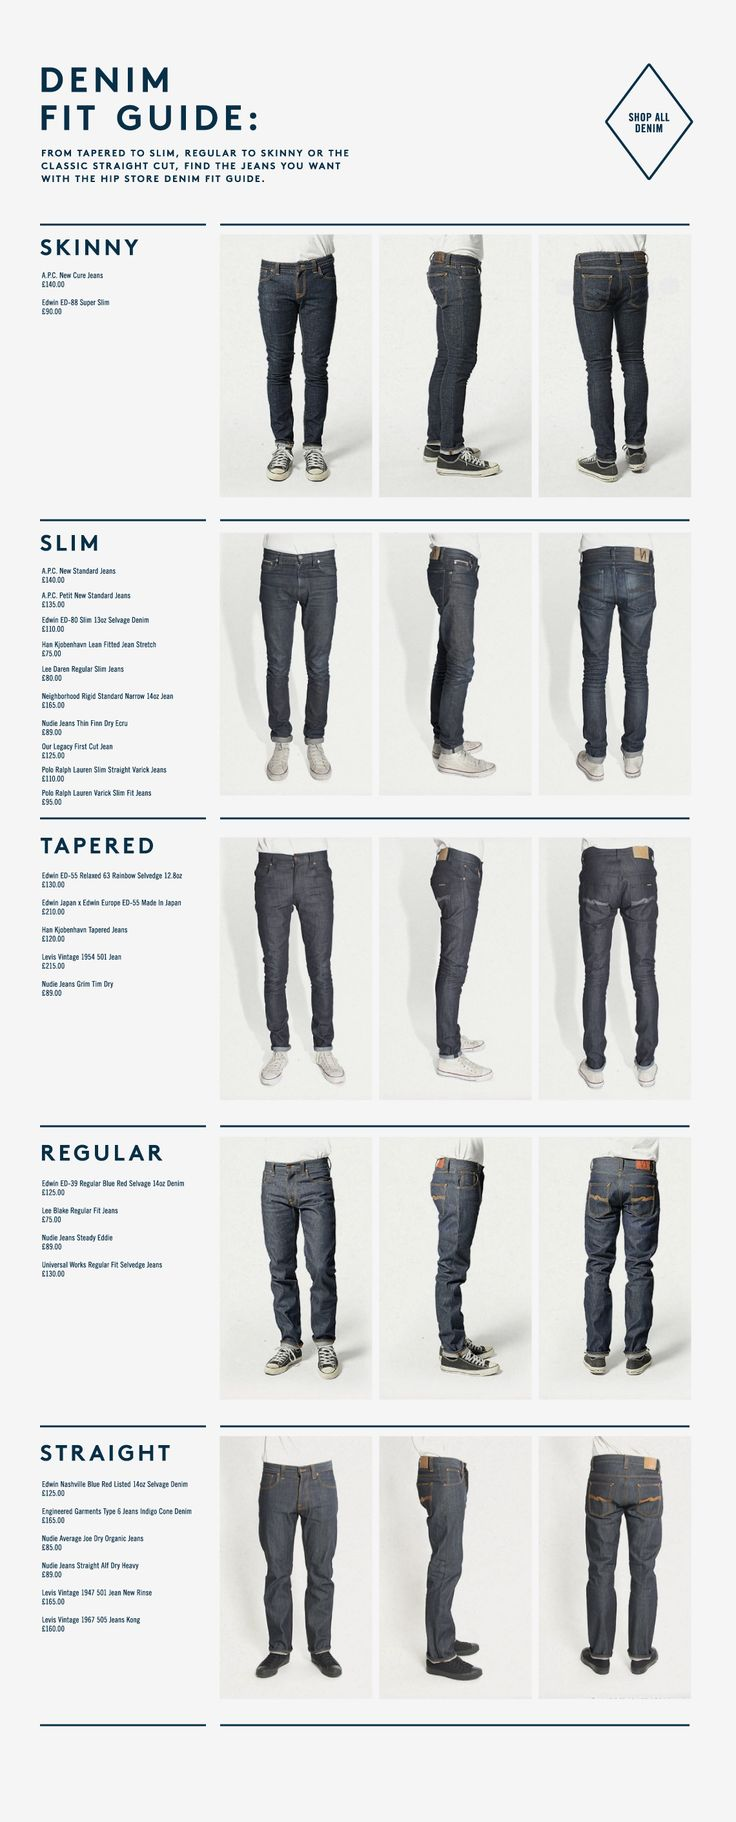 Hip_Size-denim-fit-guide.jpg 1,140×2,823 ピクセル